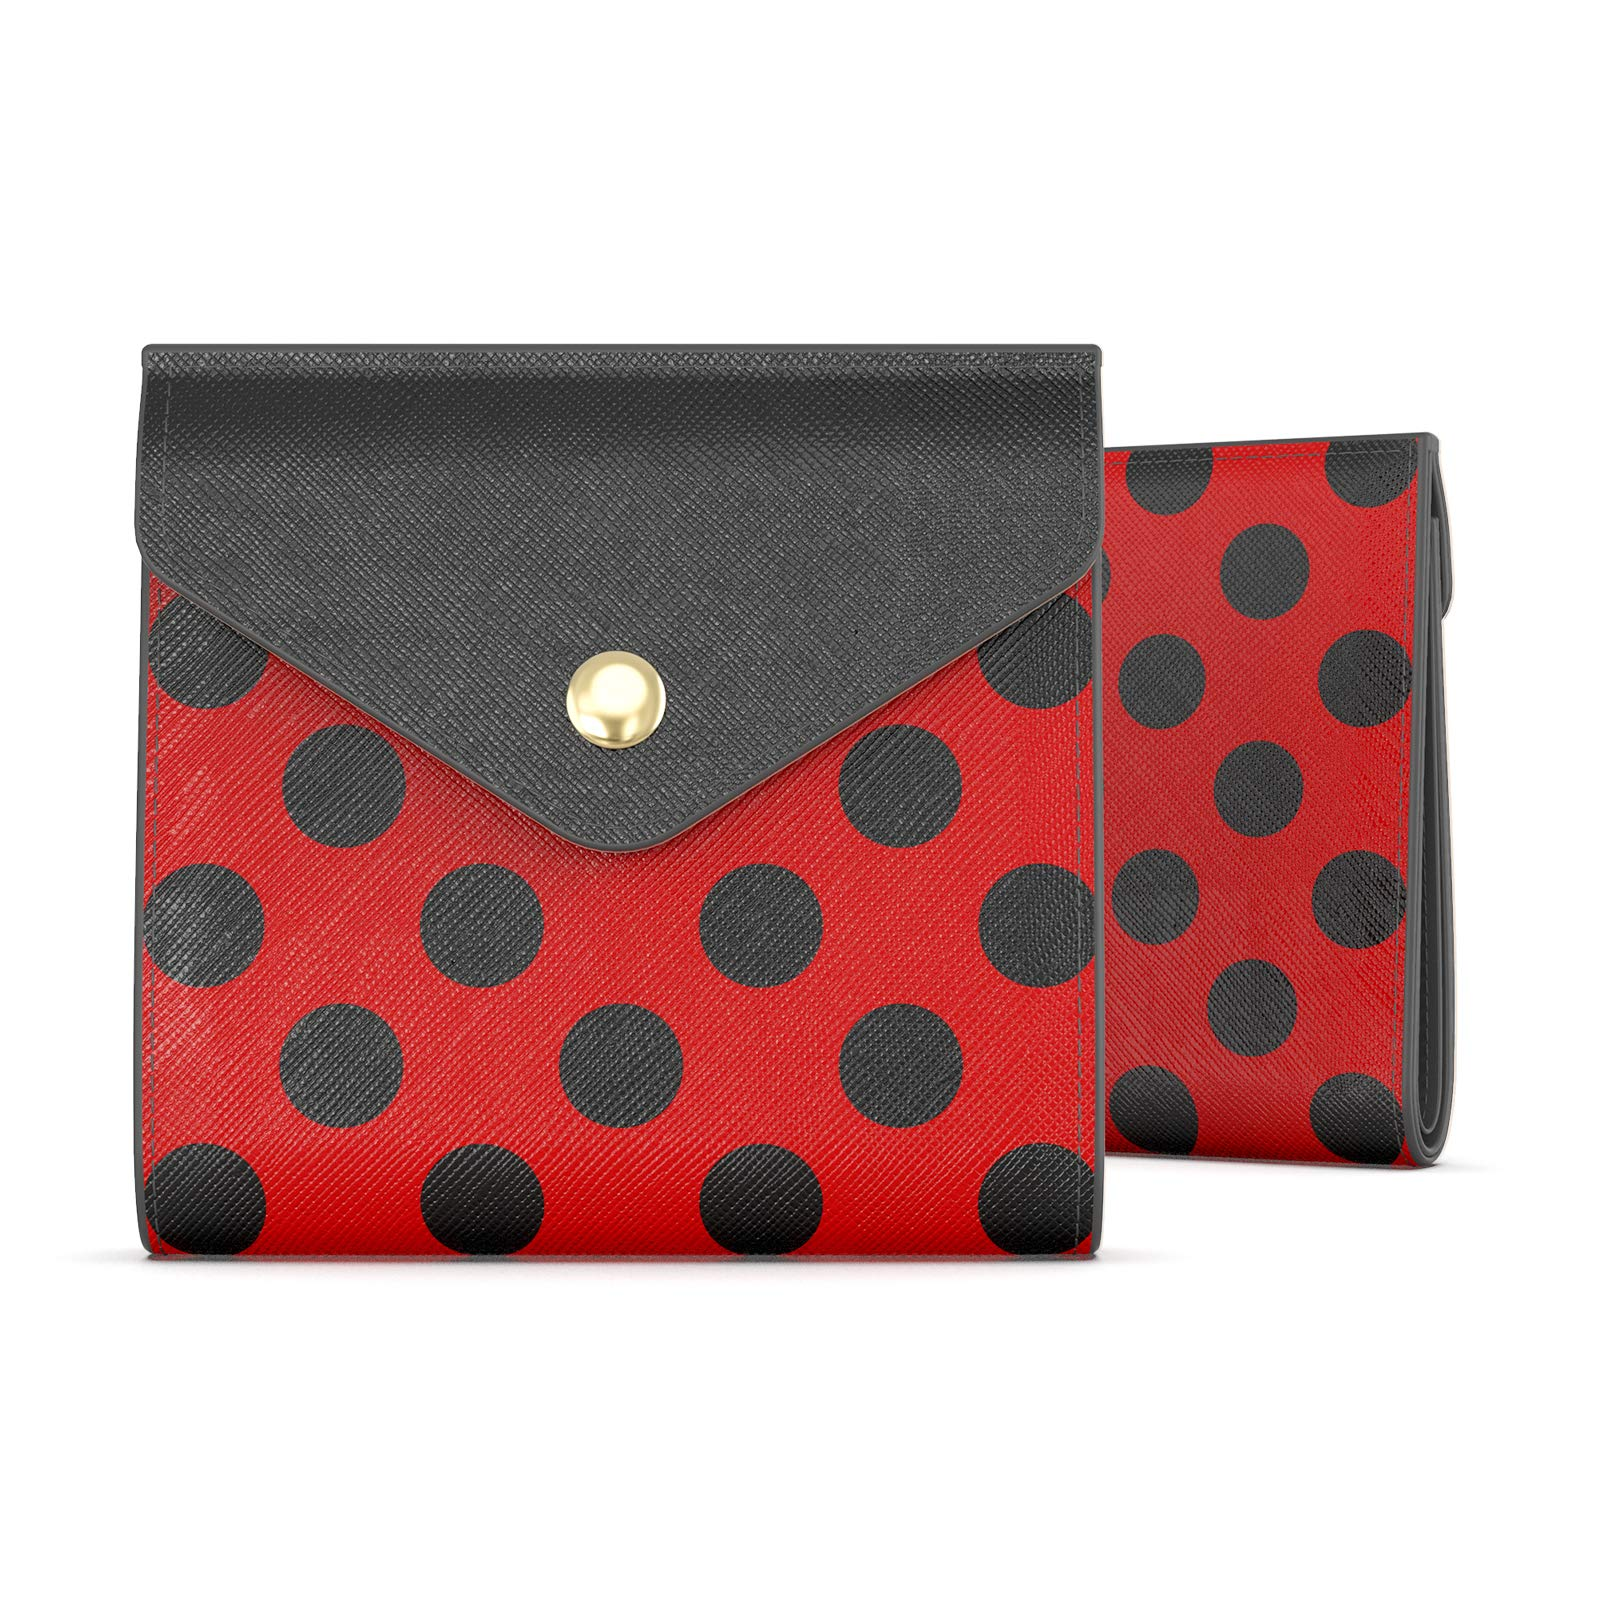 Rose Lake Women Wallet Bifold Pocket Change Purse RFID Blocking Pouch with Snaps Closure Gifts for Girls (Black Red Polka Dot)